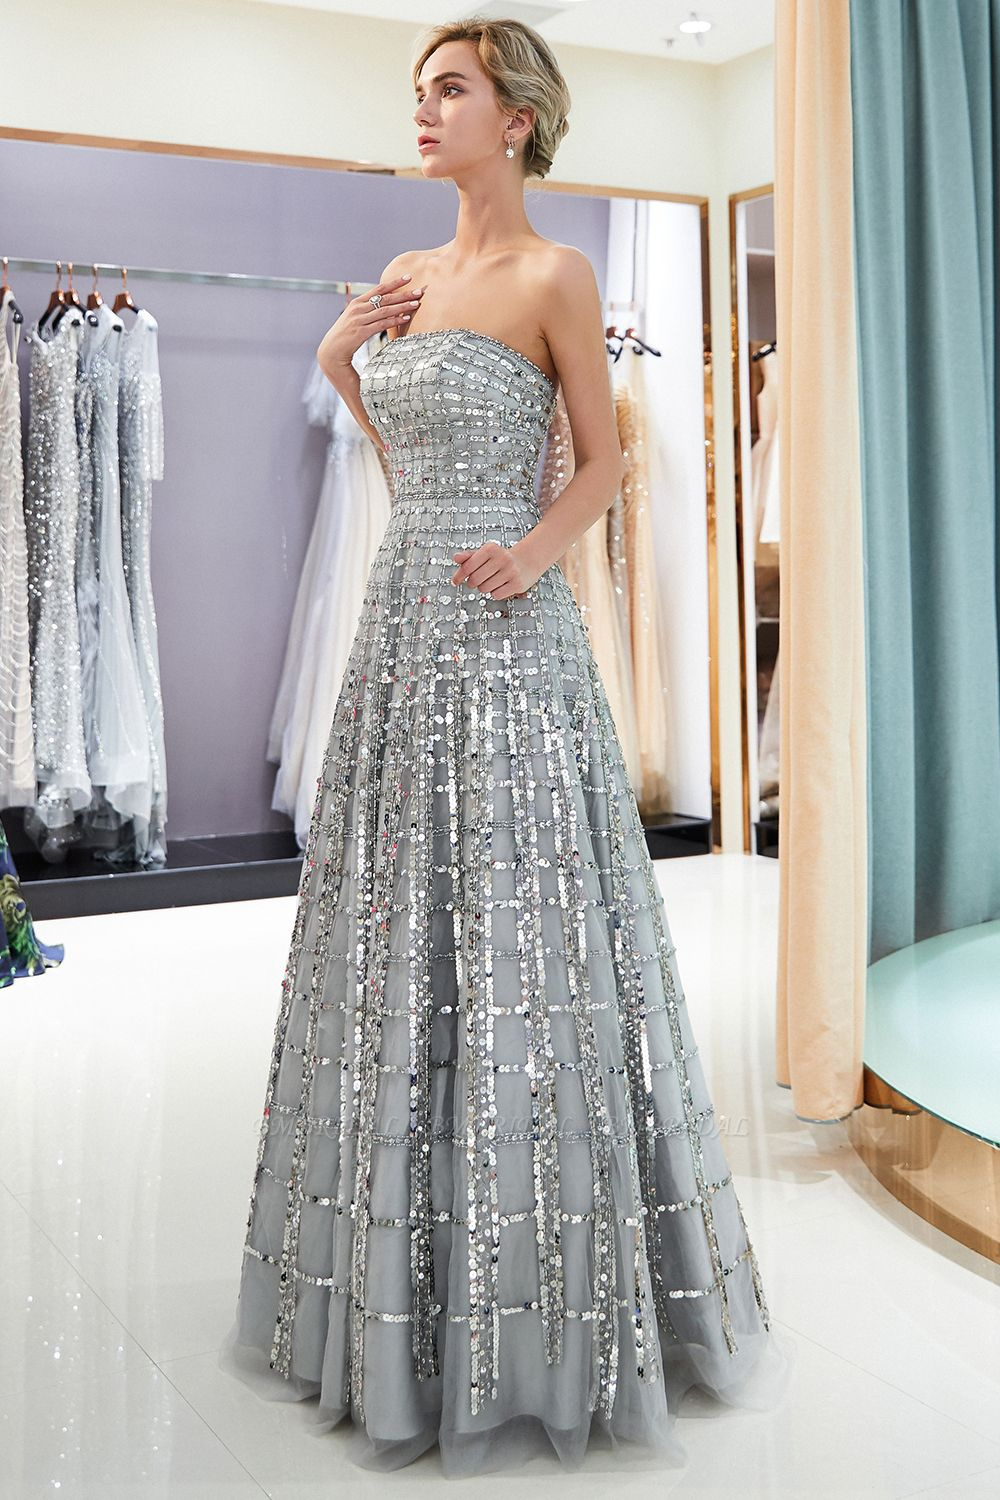 BMbridal Chic A-line Strapless Sequined Prom Dresses Chiffon Long Party Dresses On Sale